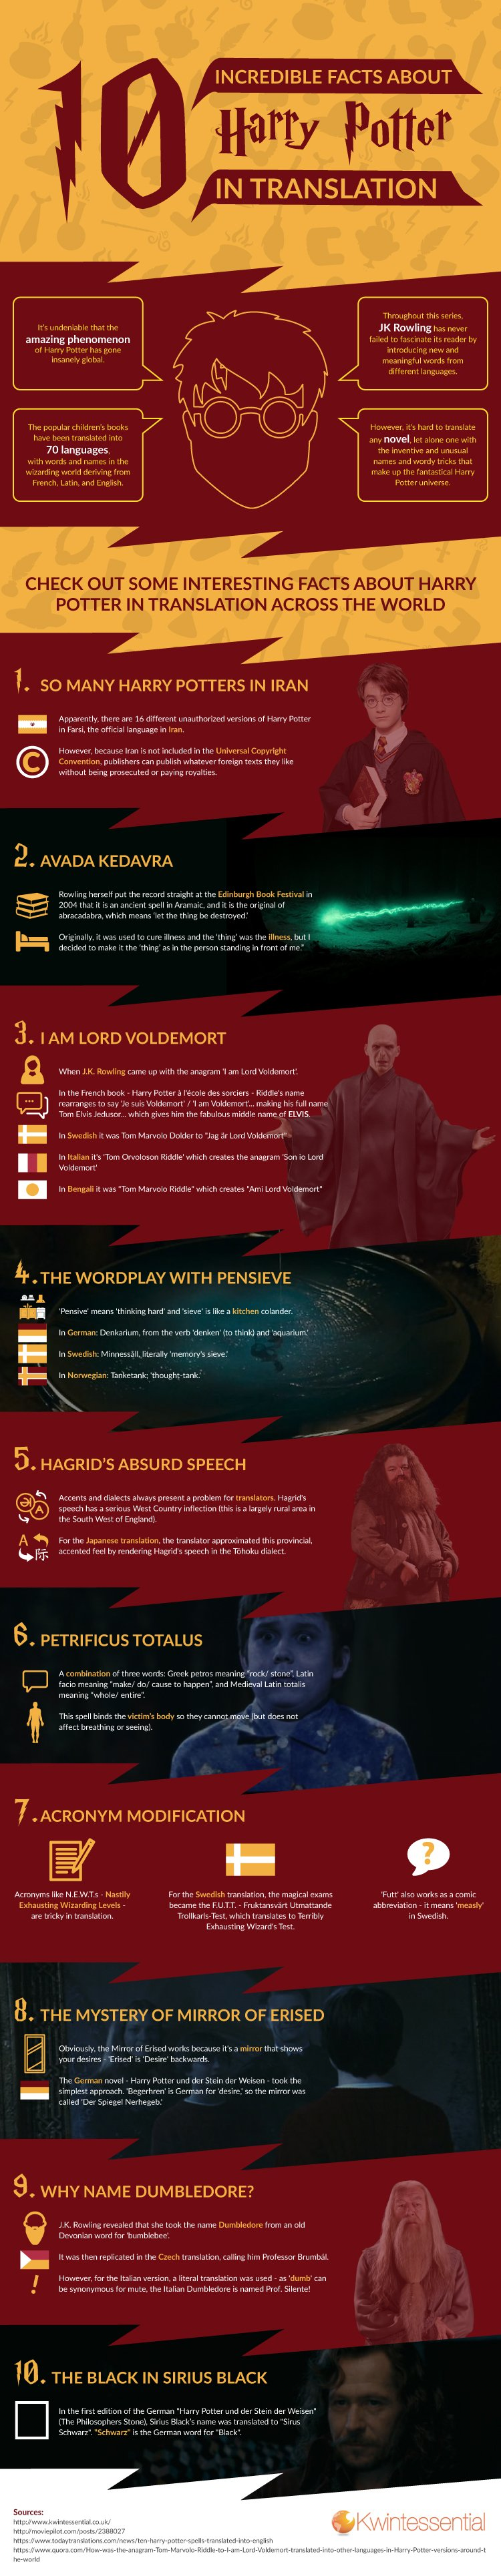 Harry Potter language translation infographic